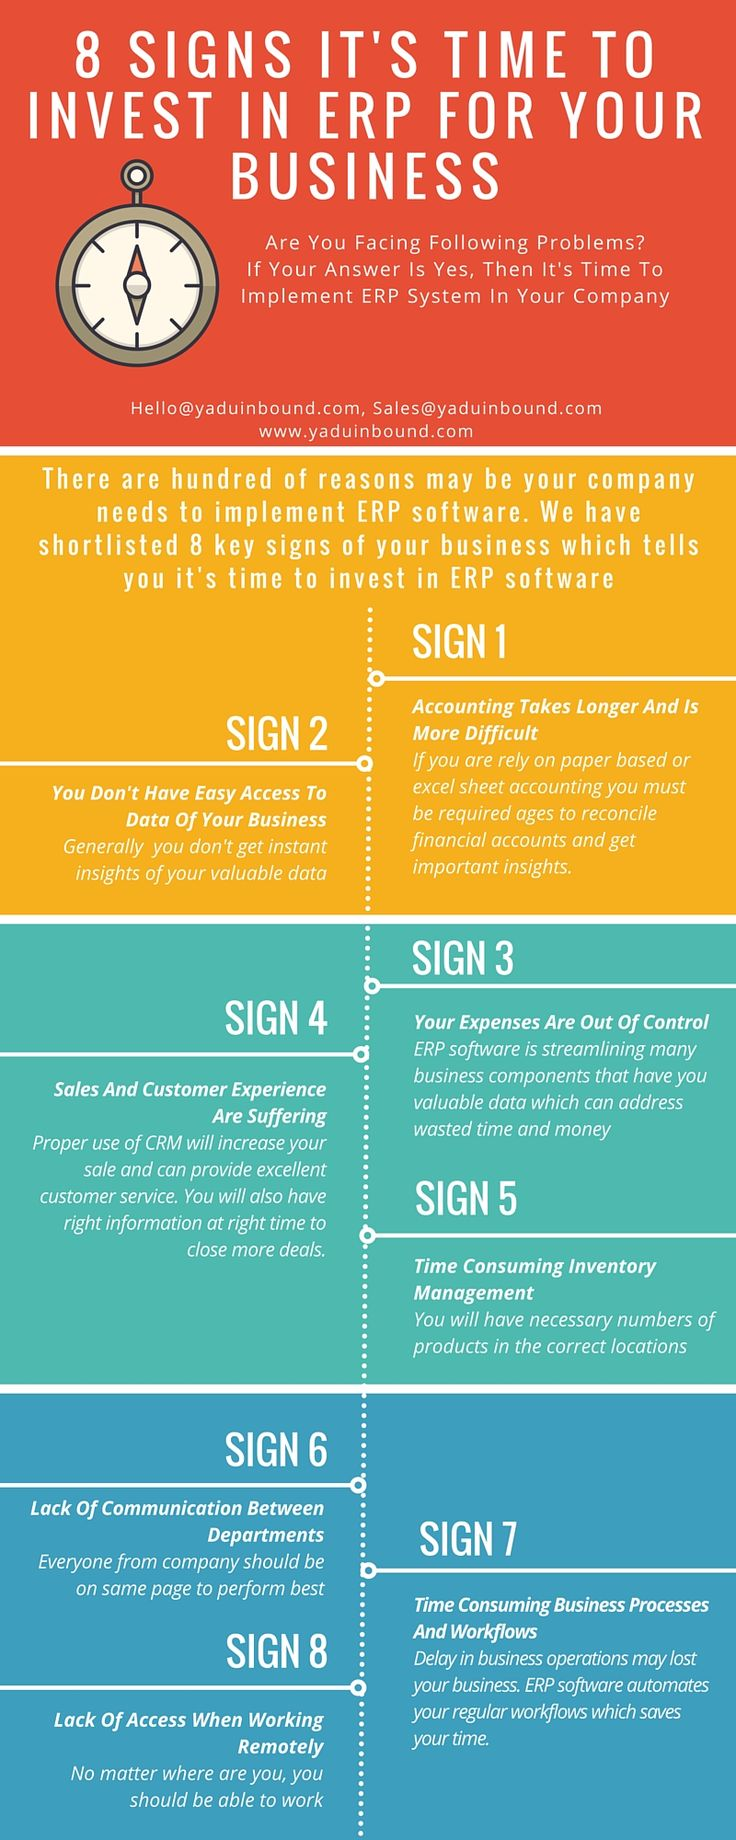 8 Signs It's Time To Invest In ERP Software For Your Business #erp #erpforbusiness #erpsoftware #infographic